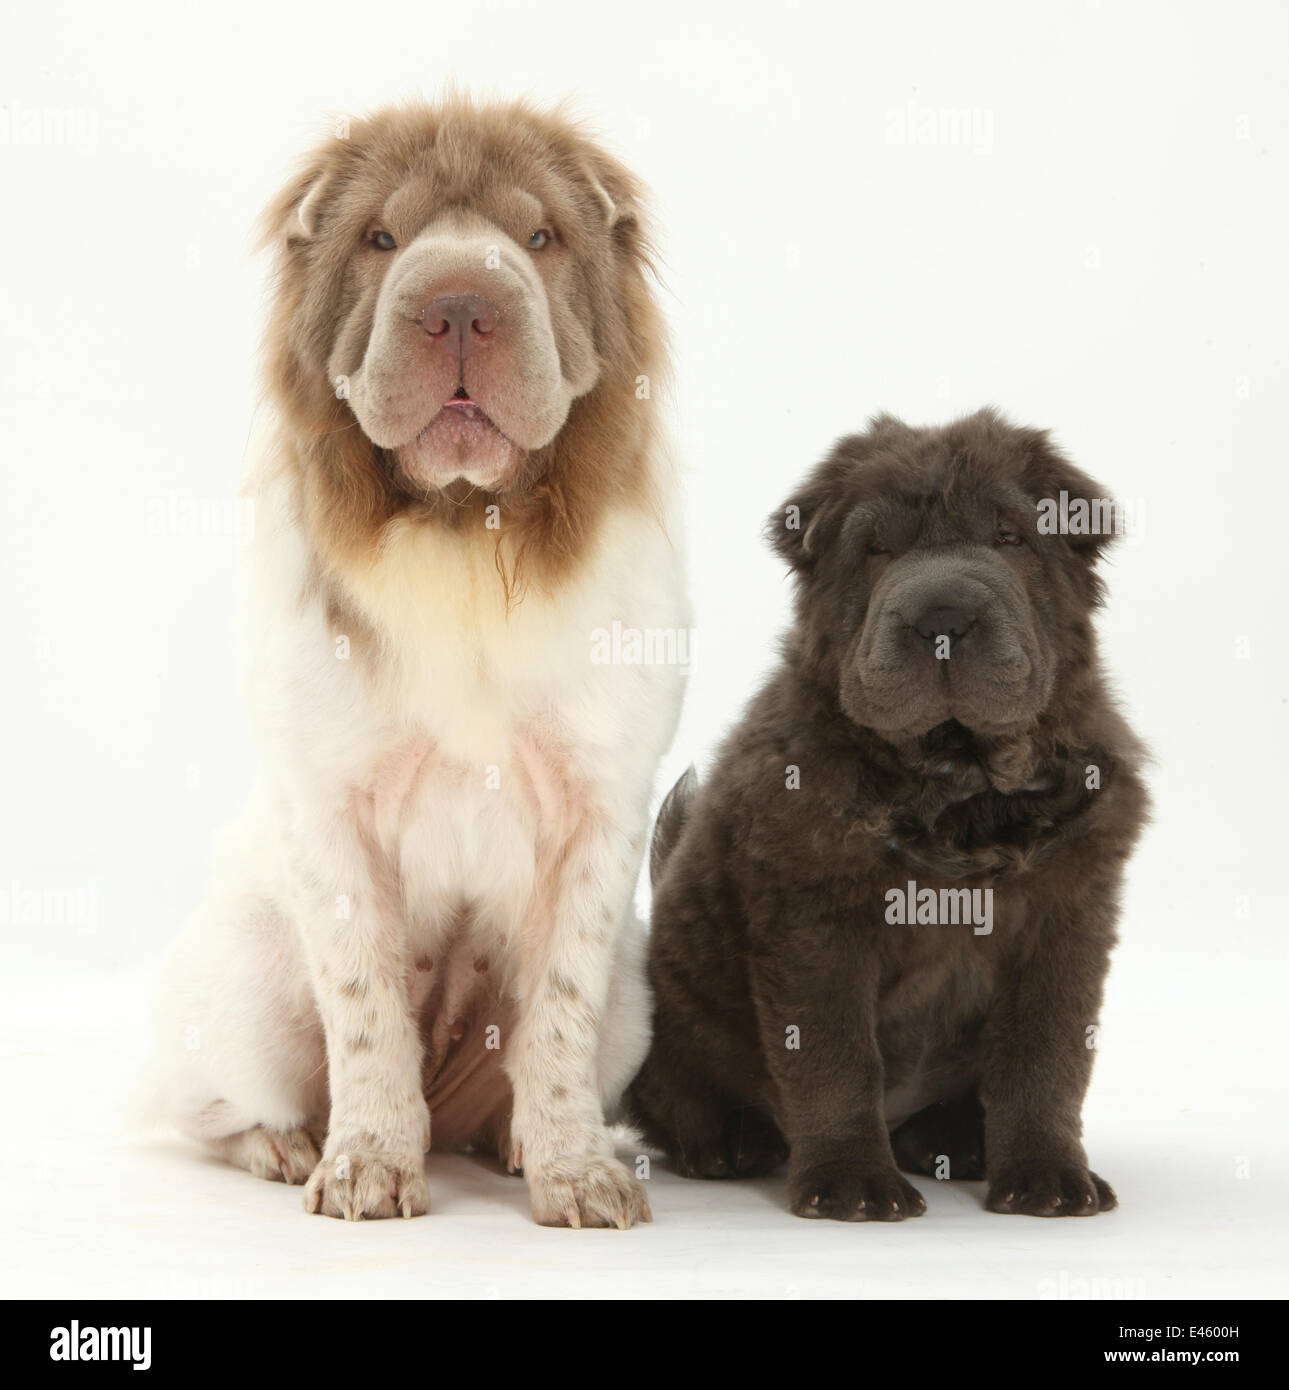 Bearcoat Shar Pei mother, with her Blue Bearcoat puppy, 13 weeks. - Stock Image